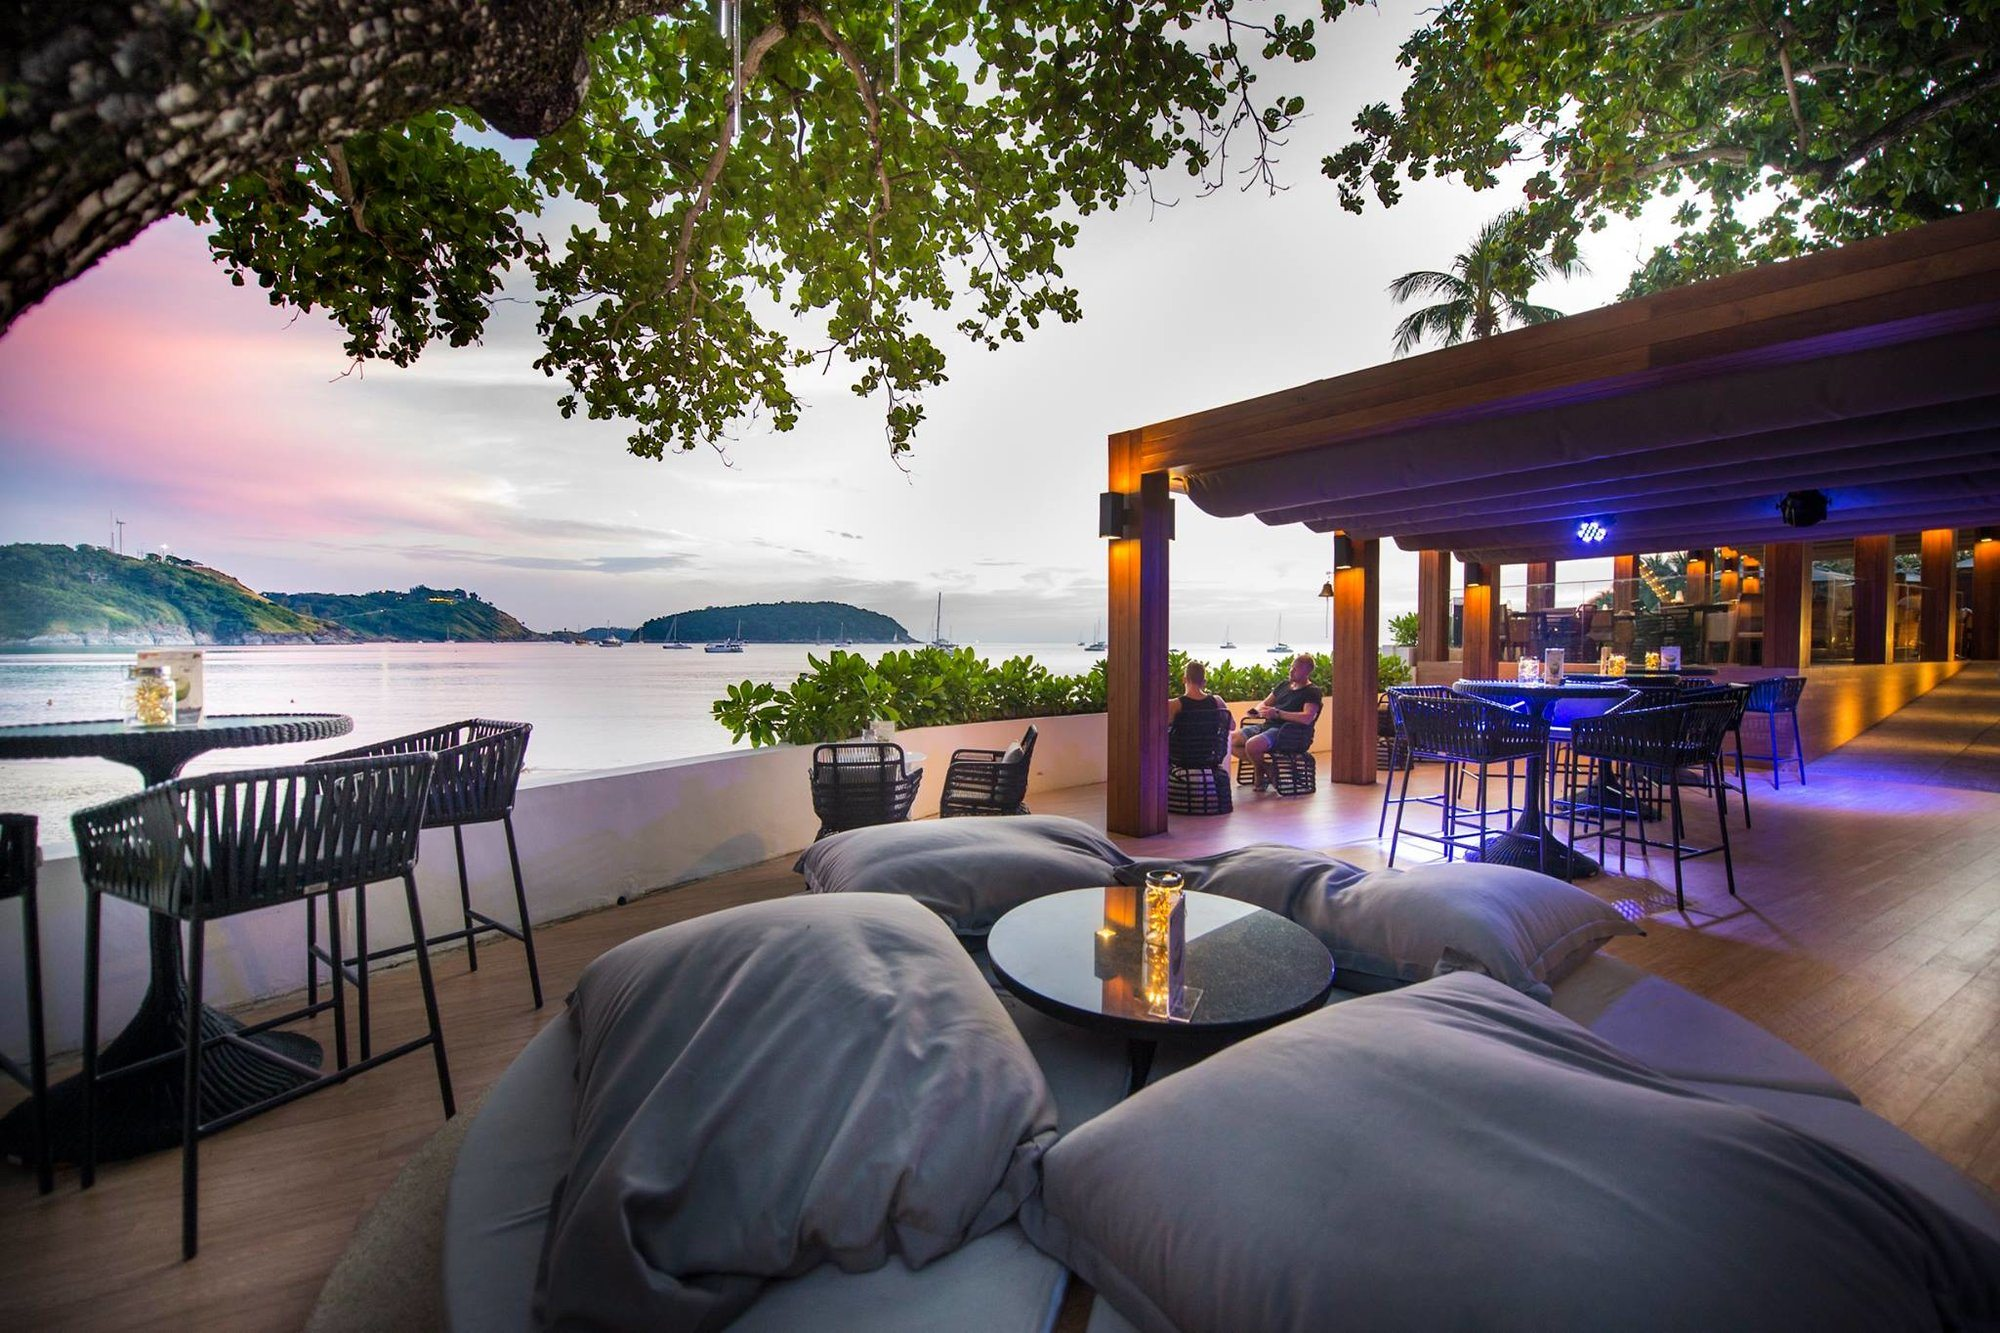 10 Best Restaurants in Nai Harn